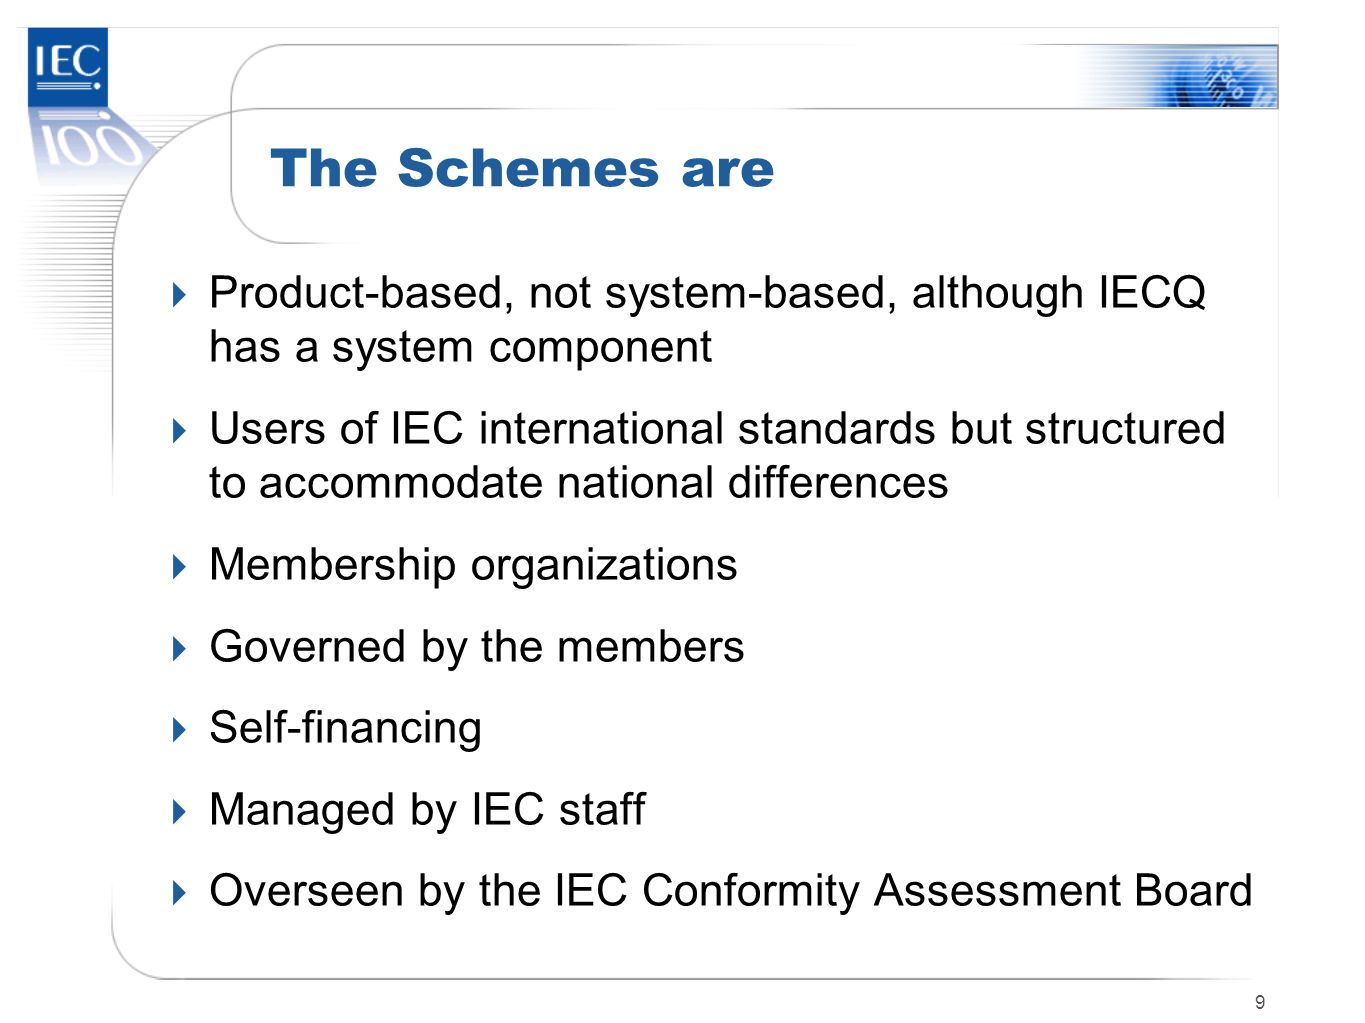 The Schemes are Product-based, not system-based, although IECQ has a system component.